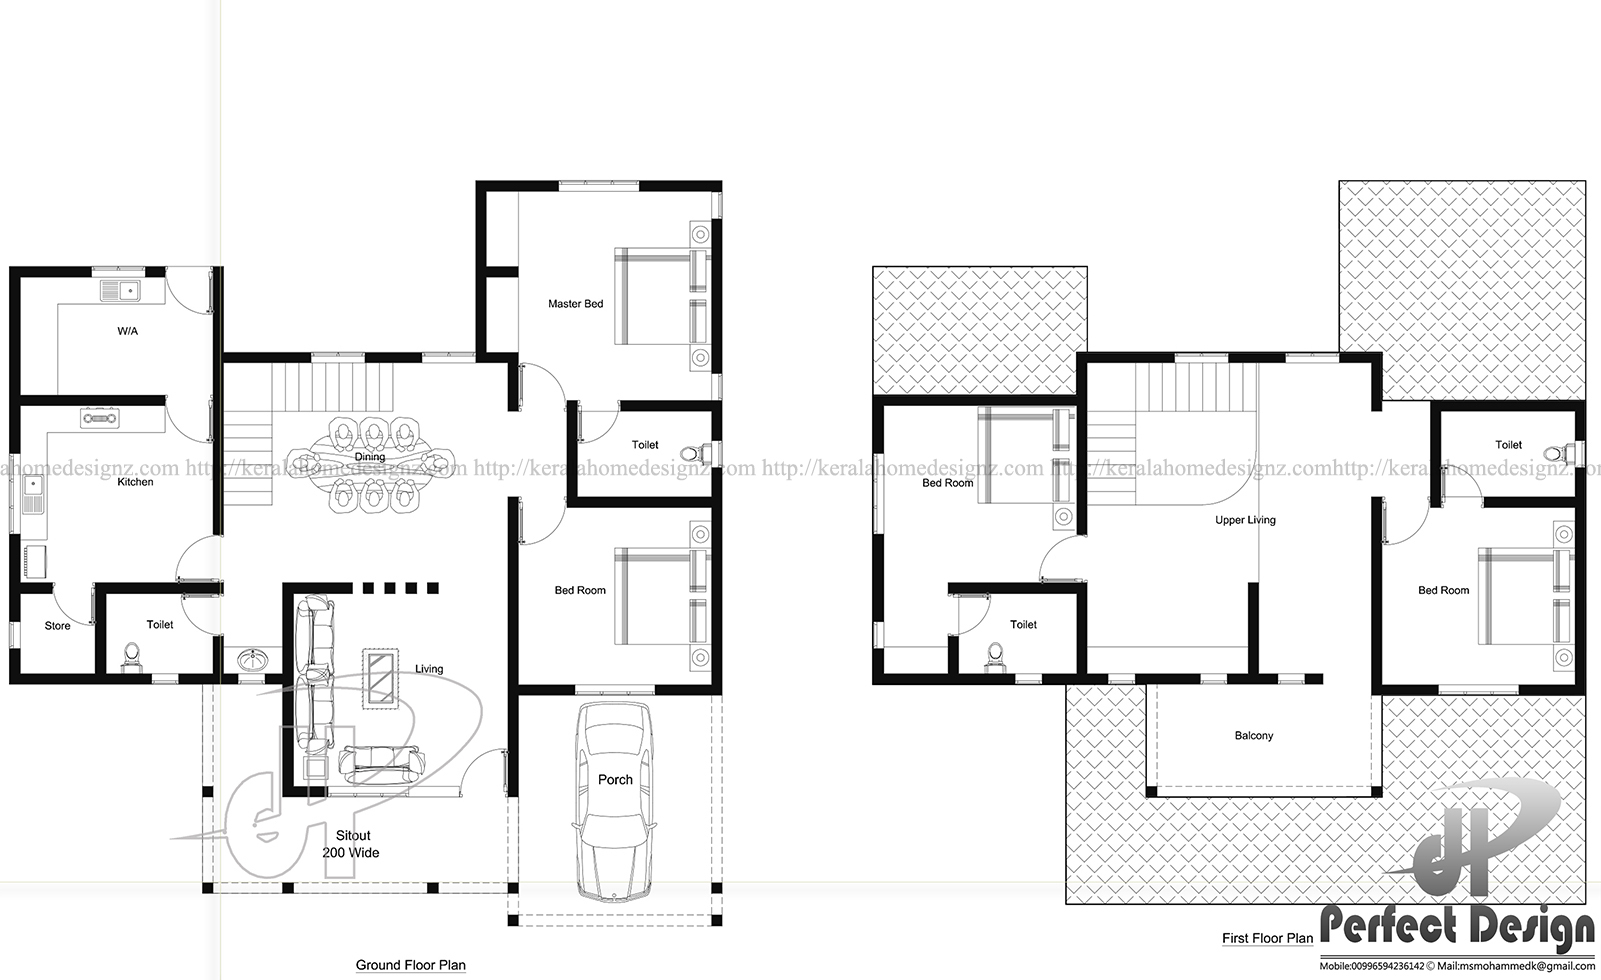 900 square feet in meters 900 square feet in meters living for 100 square meters to square feet